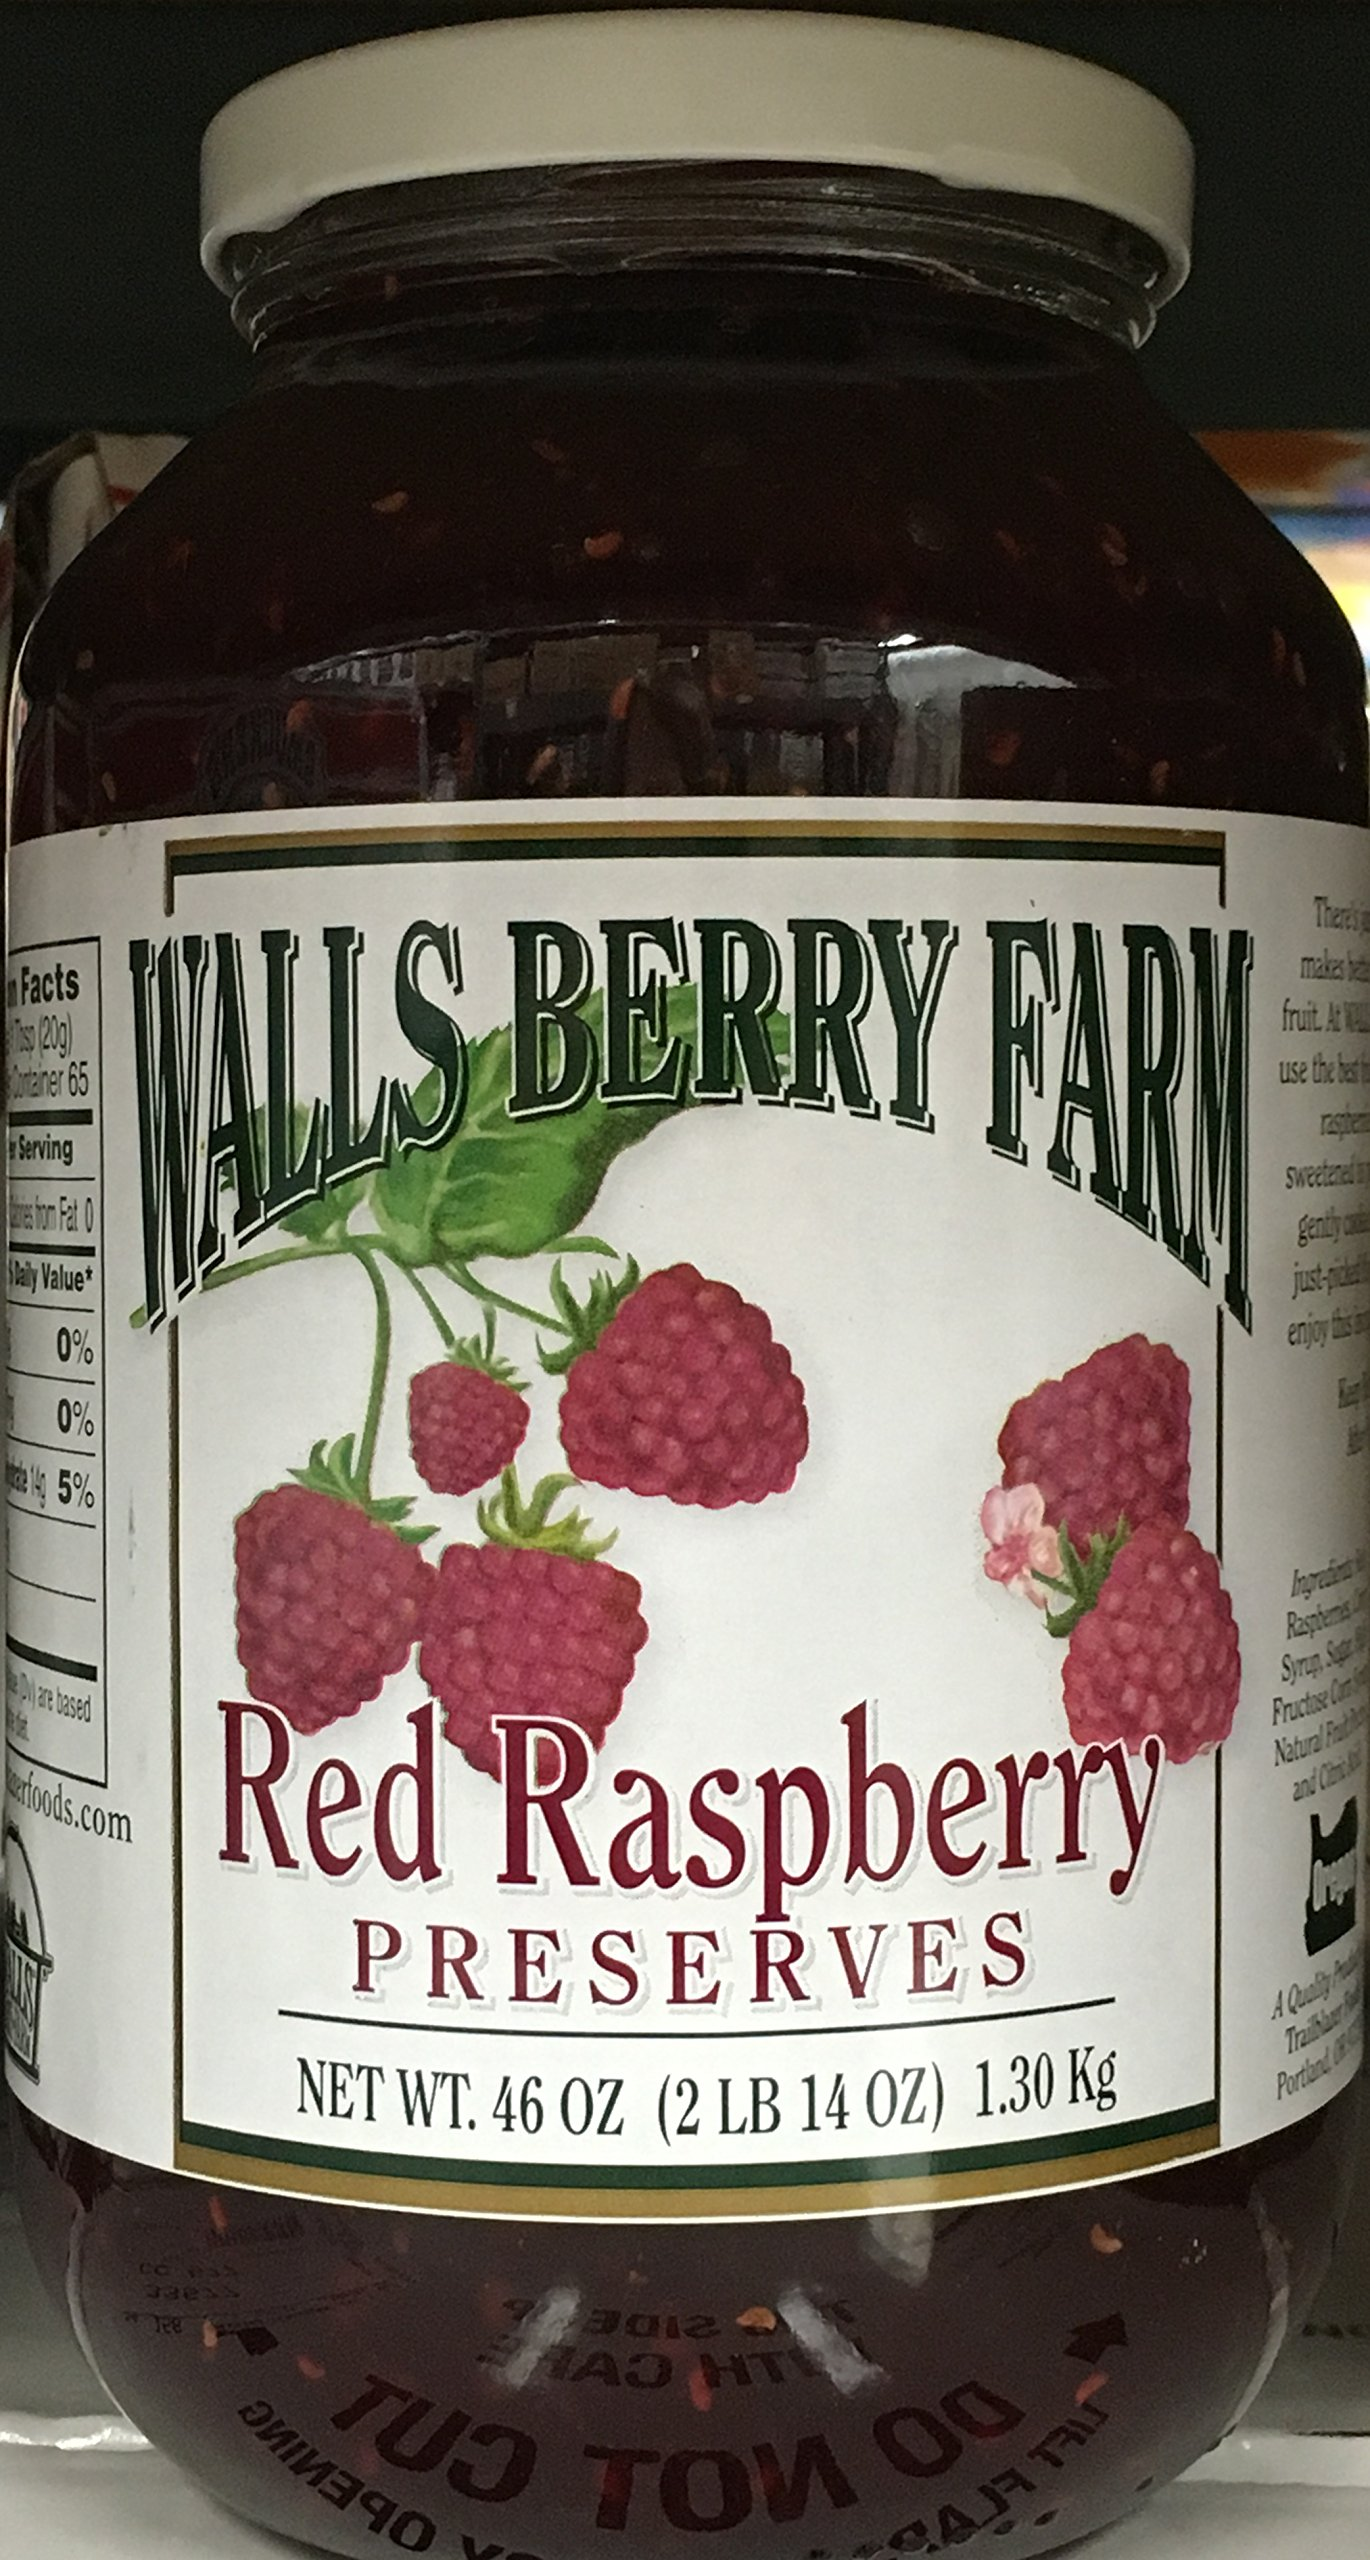 46oz Walls Berry Farm Red Raspberry Preserves, Pack of 1 by Walls Berry Farm